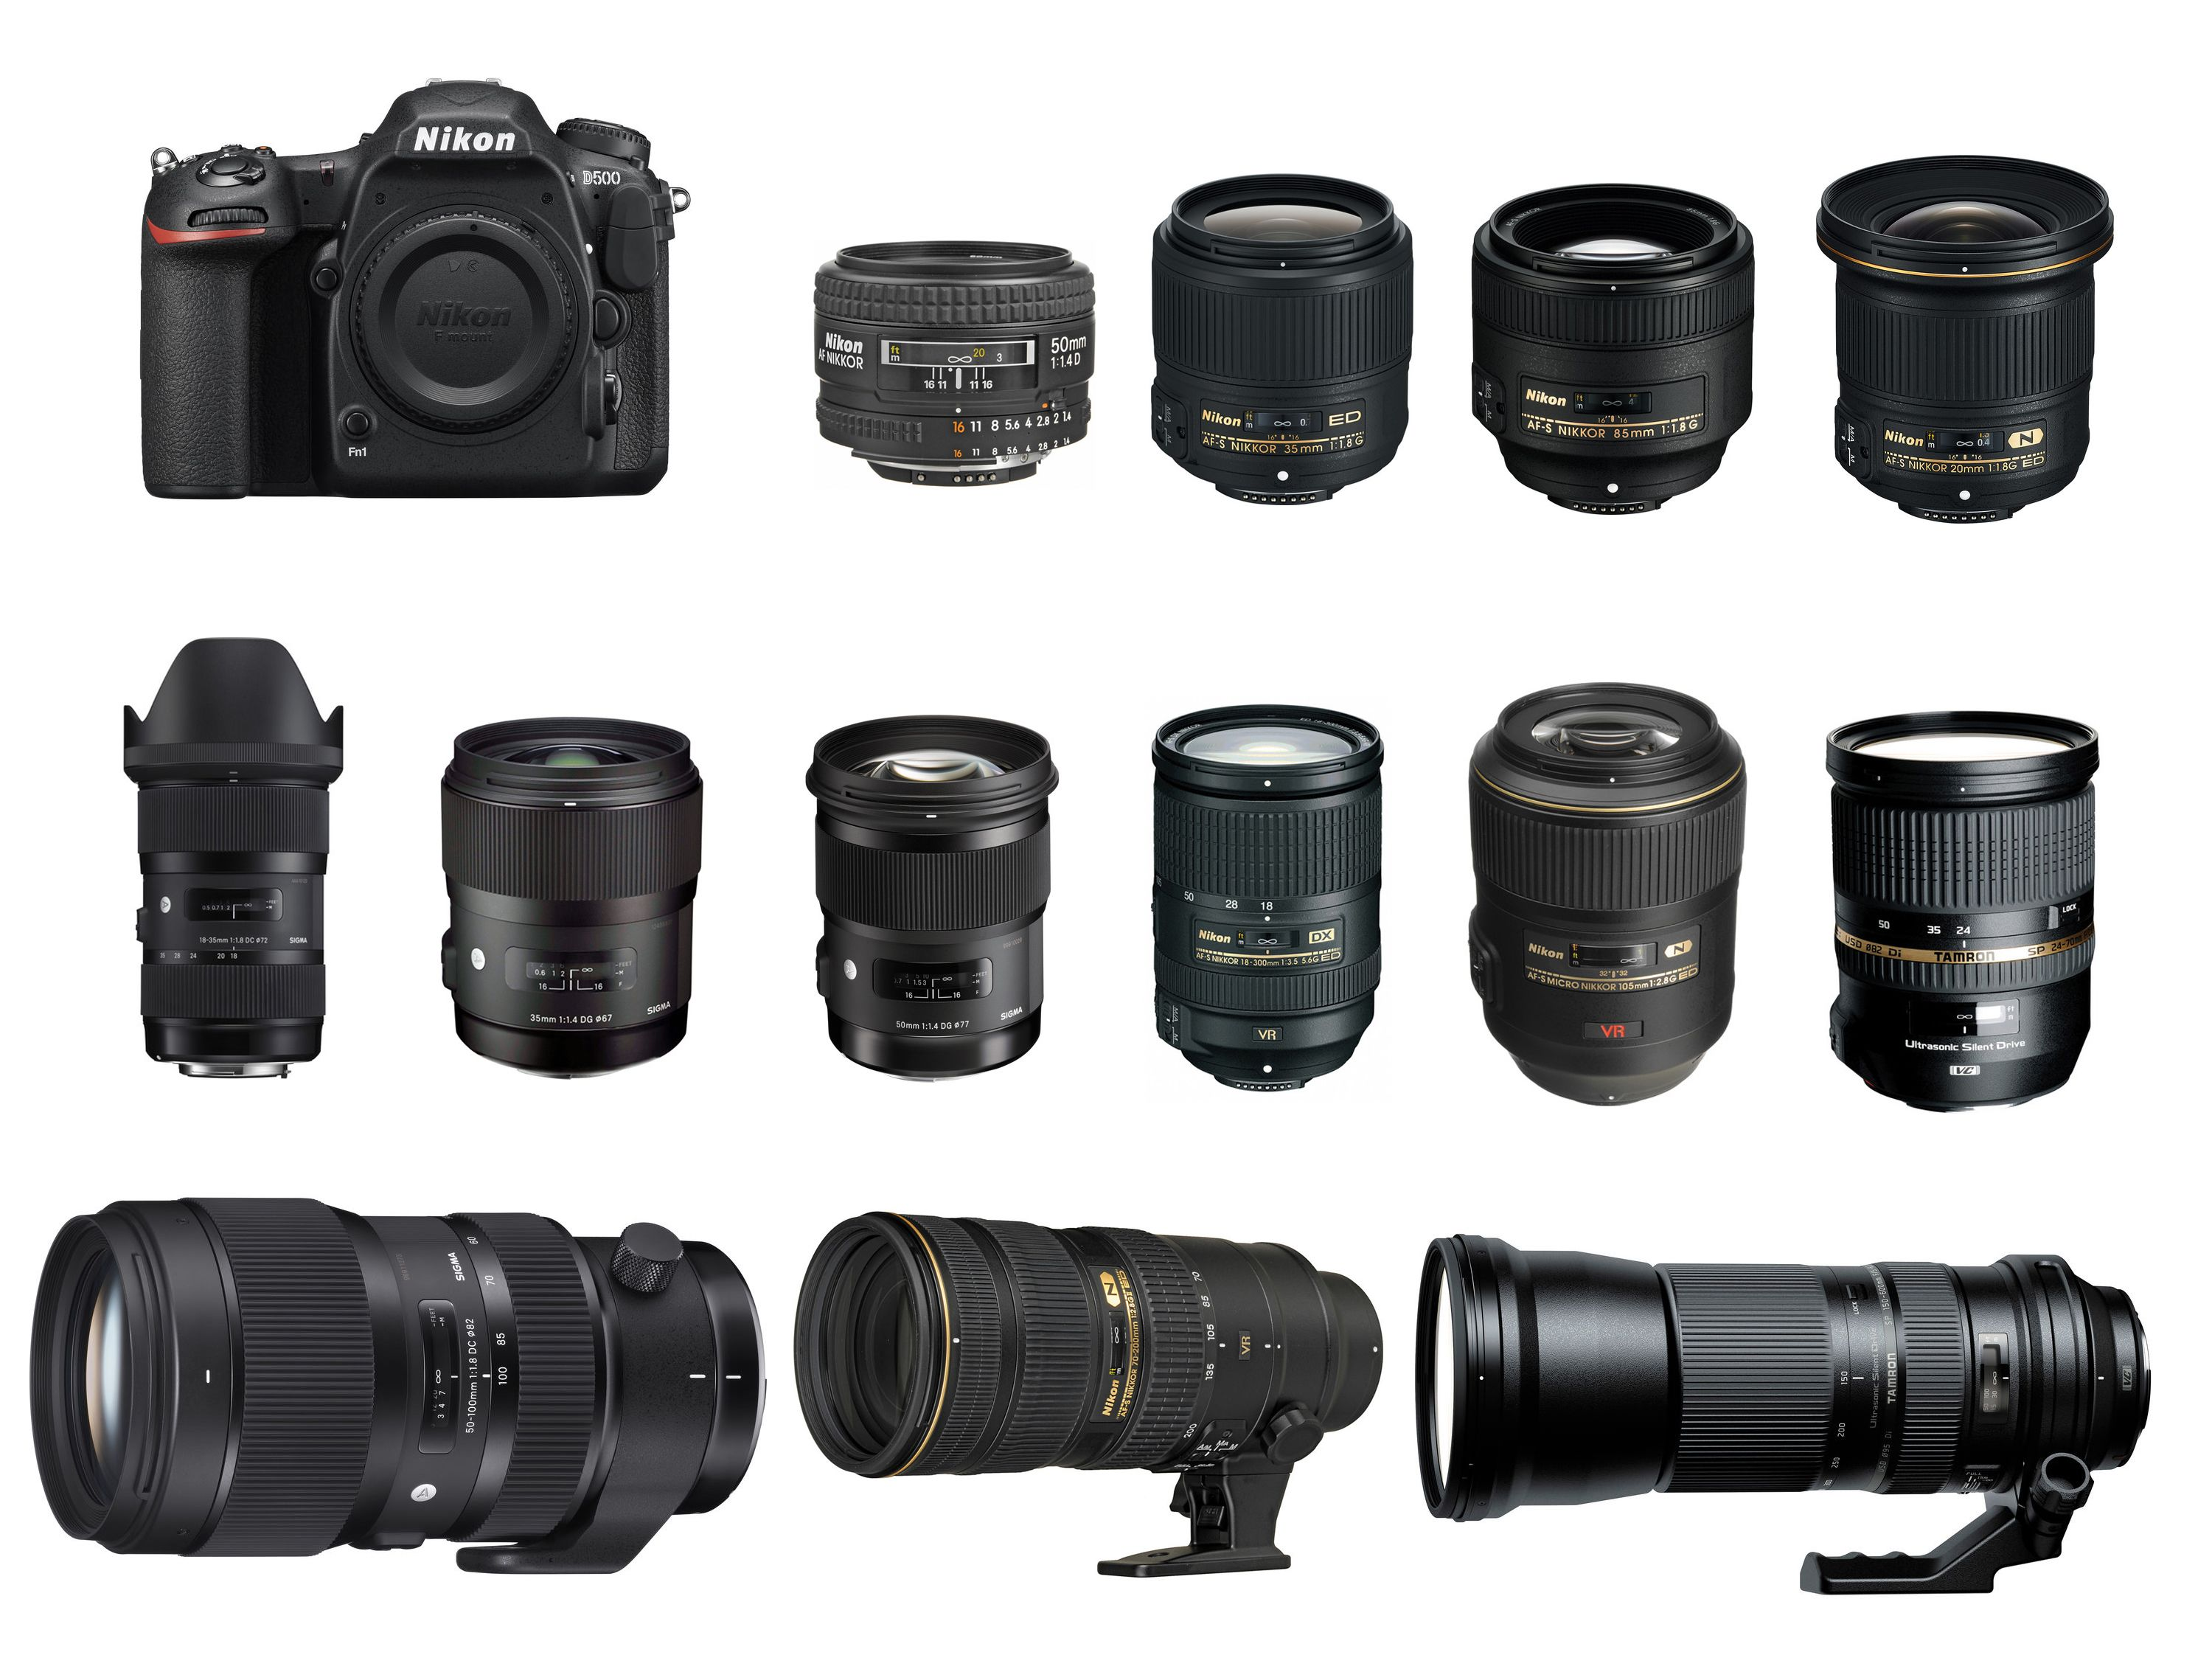 Nikon D500 is a new flagship DX format DSLR camera released in early ...